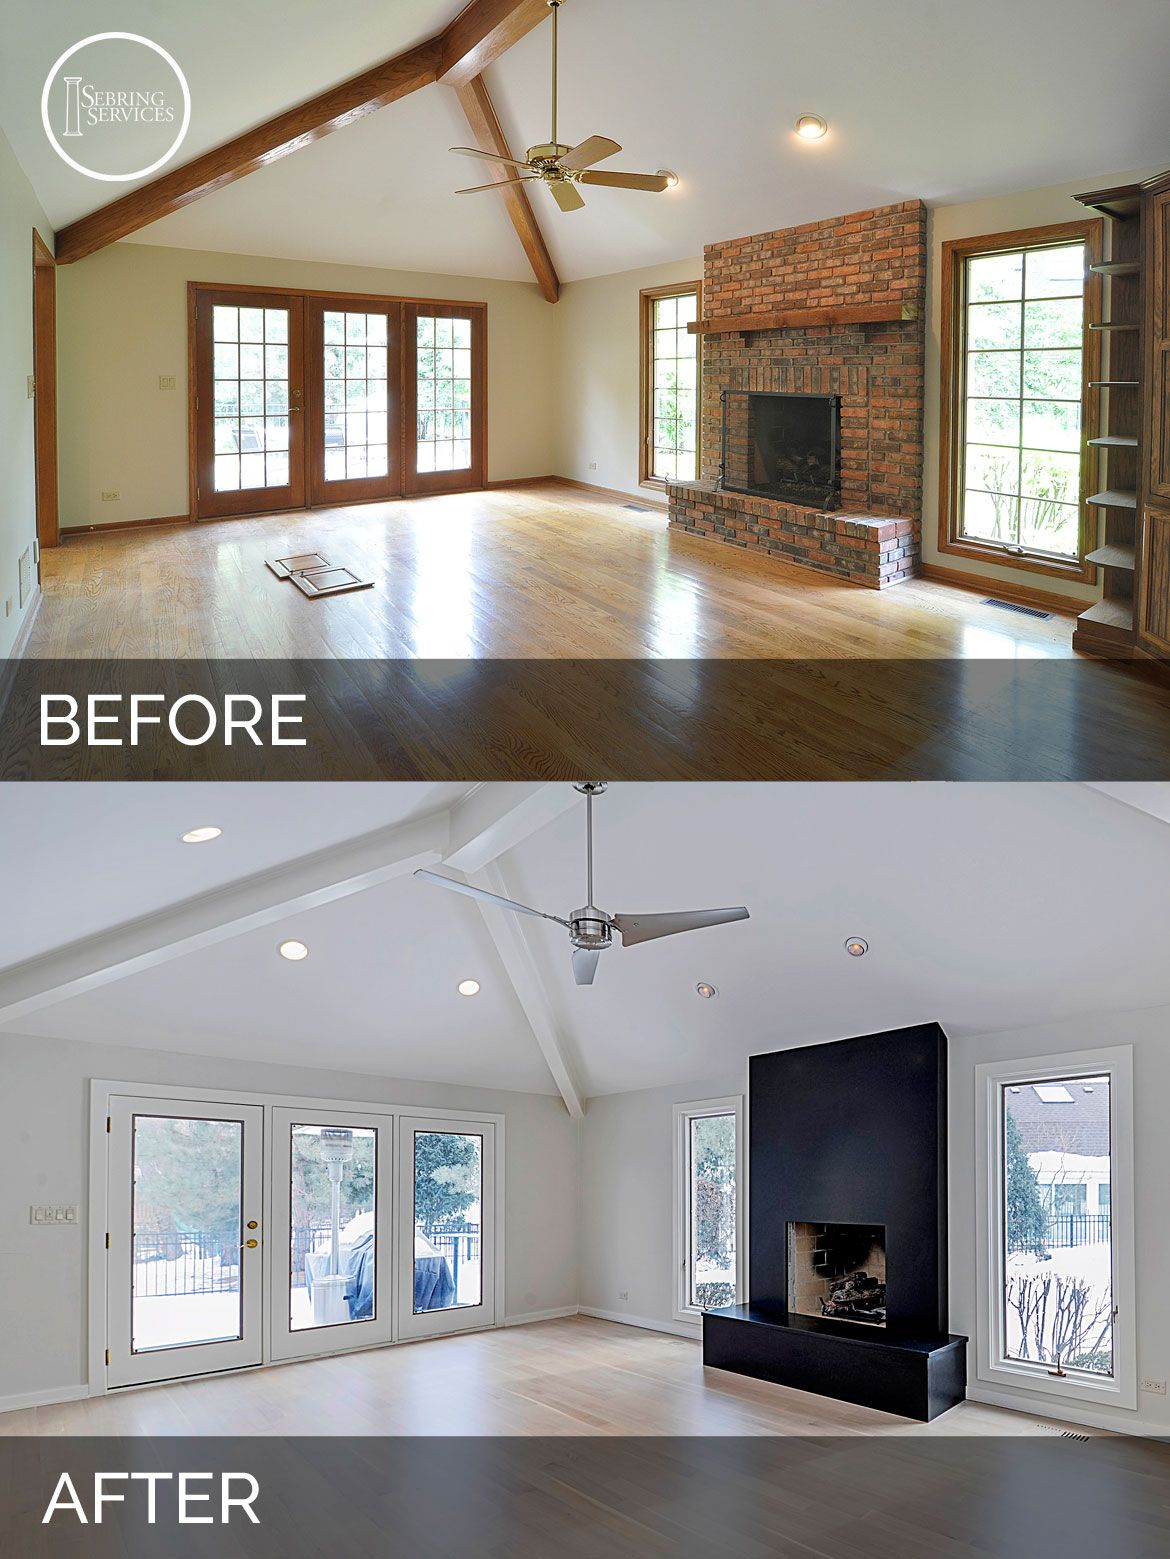 Kitchen Remodels Before And After Commercial Equipment Remodeling Sebring Services